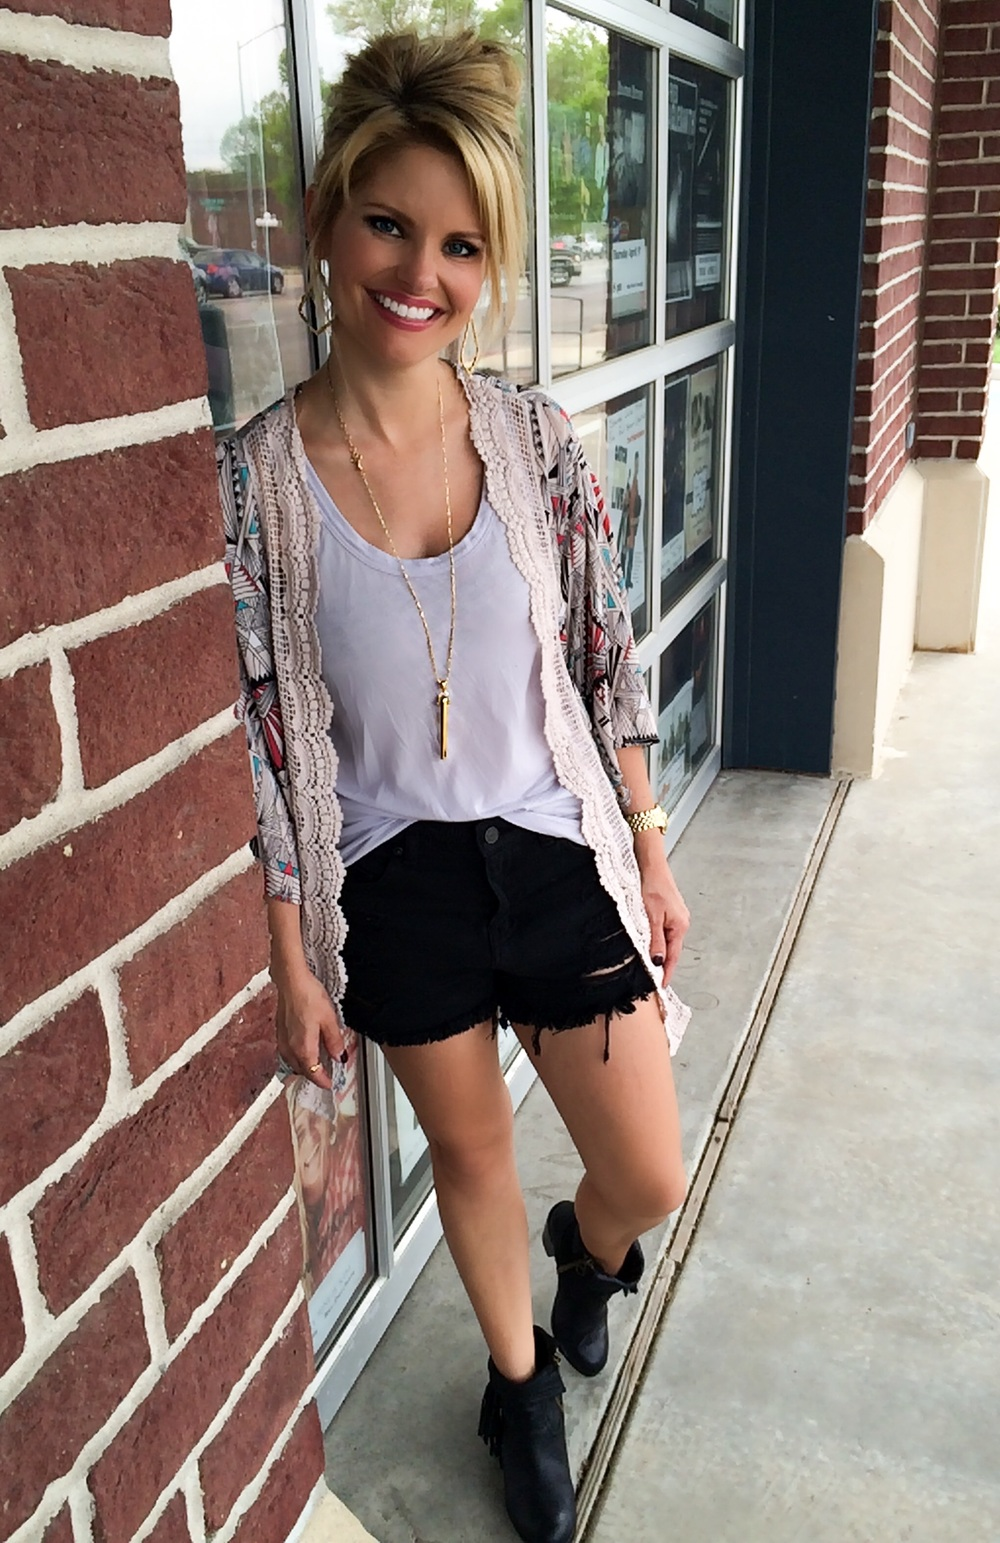 Kimono: Target Shorts: Nordstrom Tank: Theory : Booties: Sam Edelman Necklace: Stella & Dot Earrings: Kendra Scott